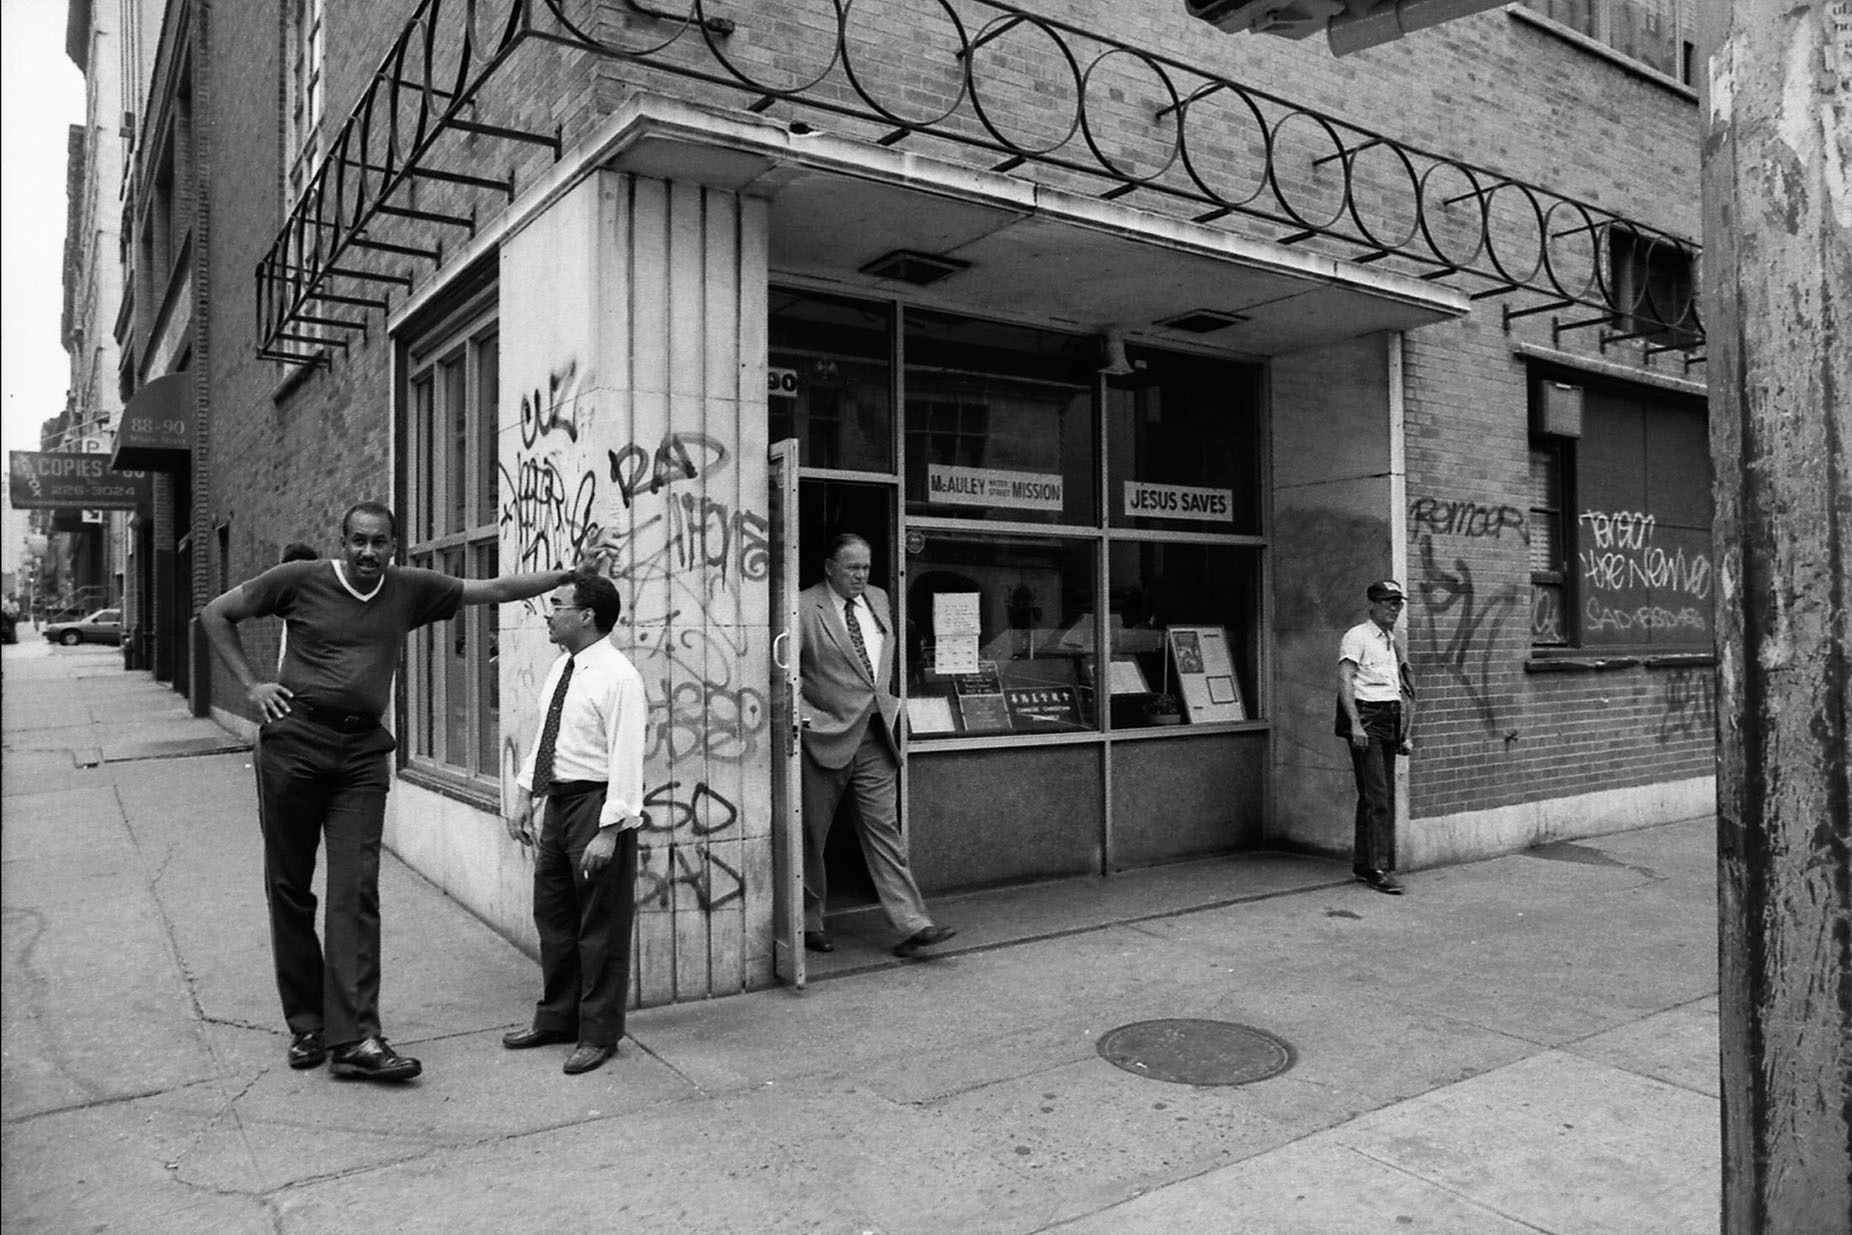 Mr. Varn Hagen walks out, Mc Auley Water Street Mission, NYC